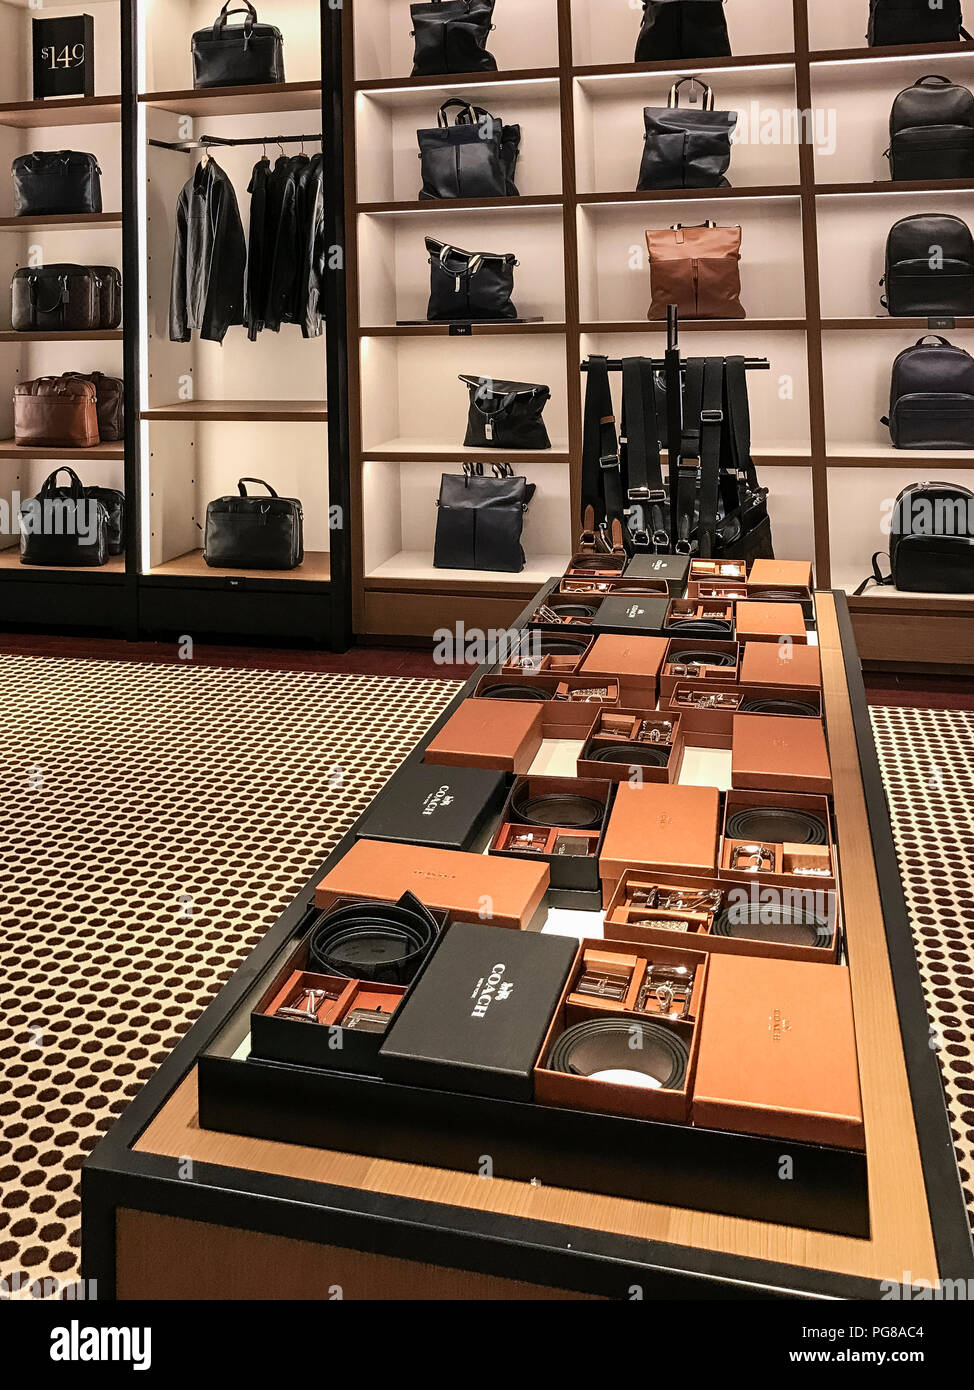 Men's product display in a Coach Store, Atlantic City, New Jersey, USA. - Stock Image